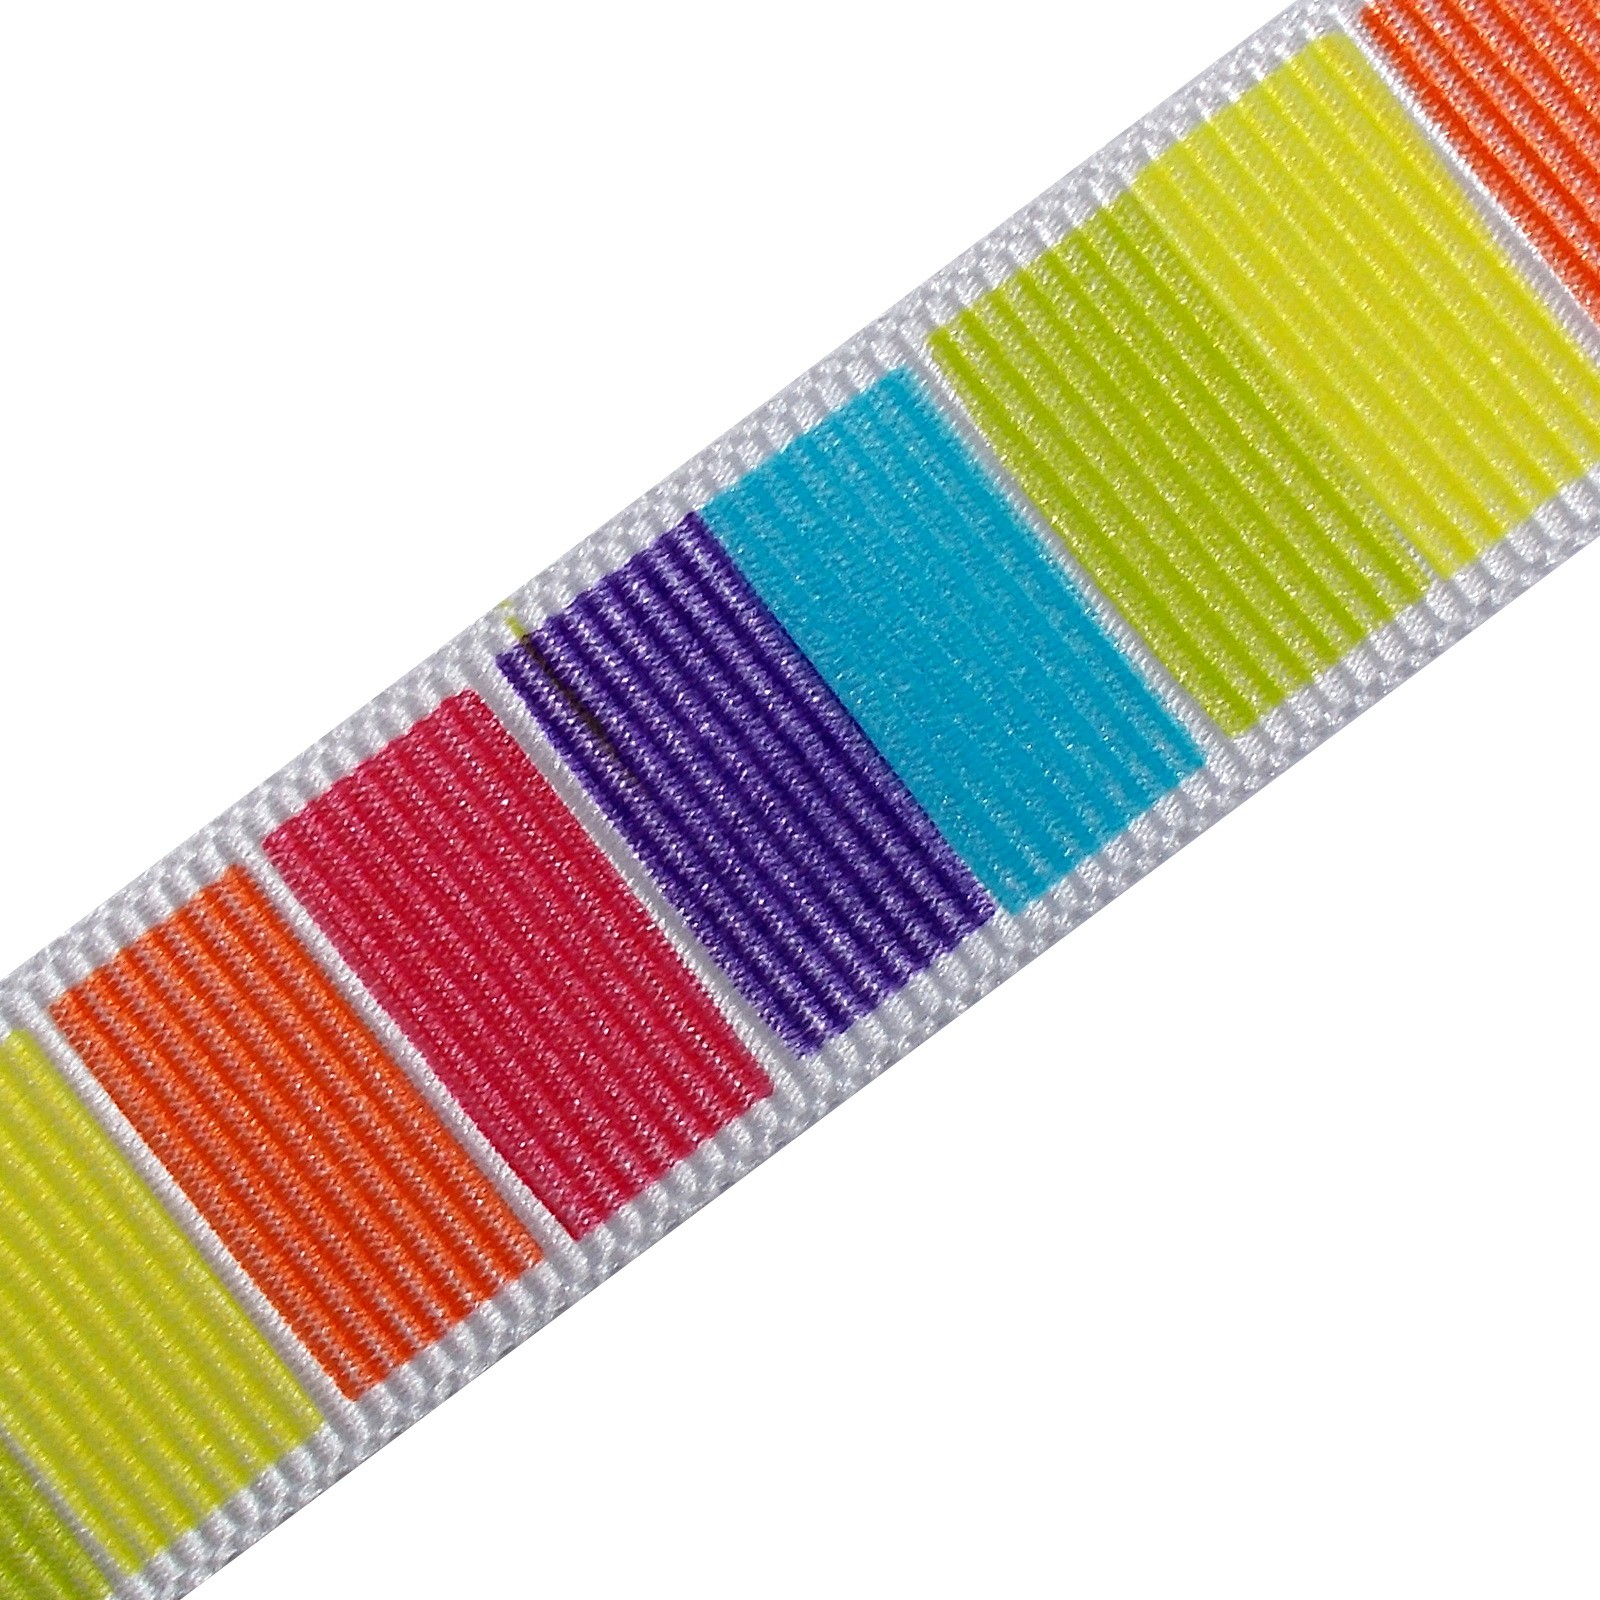 Berisfords Bright Rainbow Grosgrain Ribbon 25mm wide Block Stripes 1 metre length